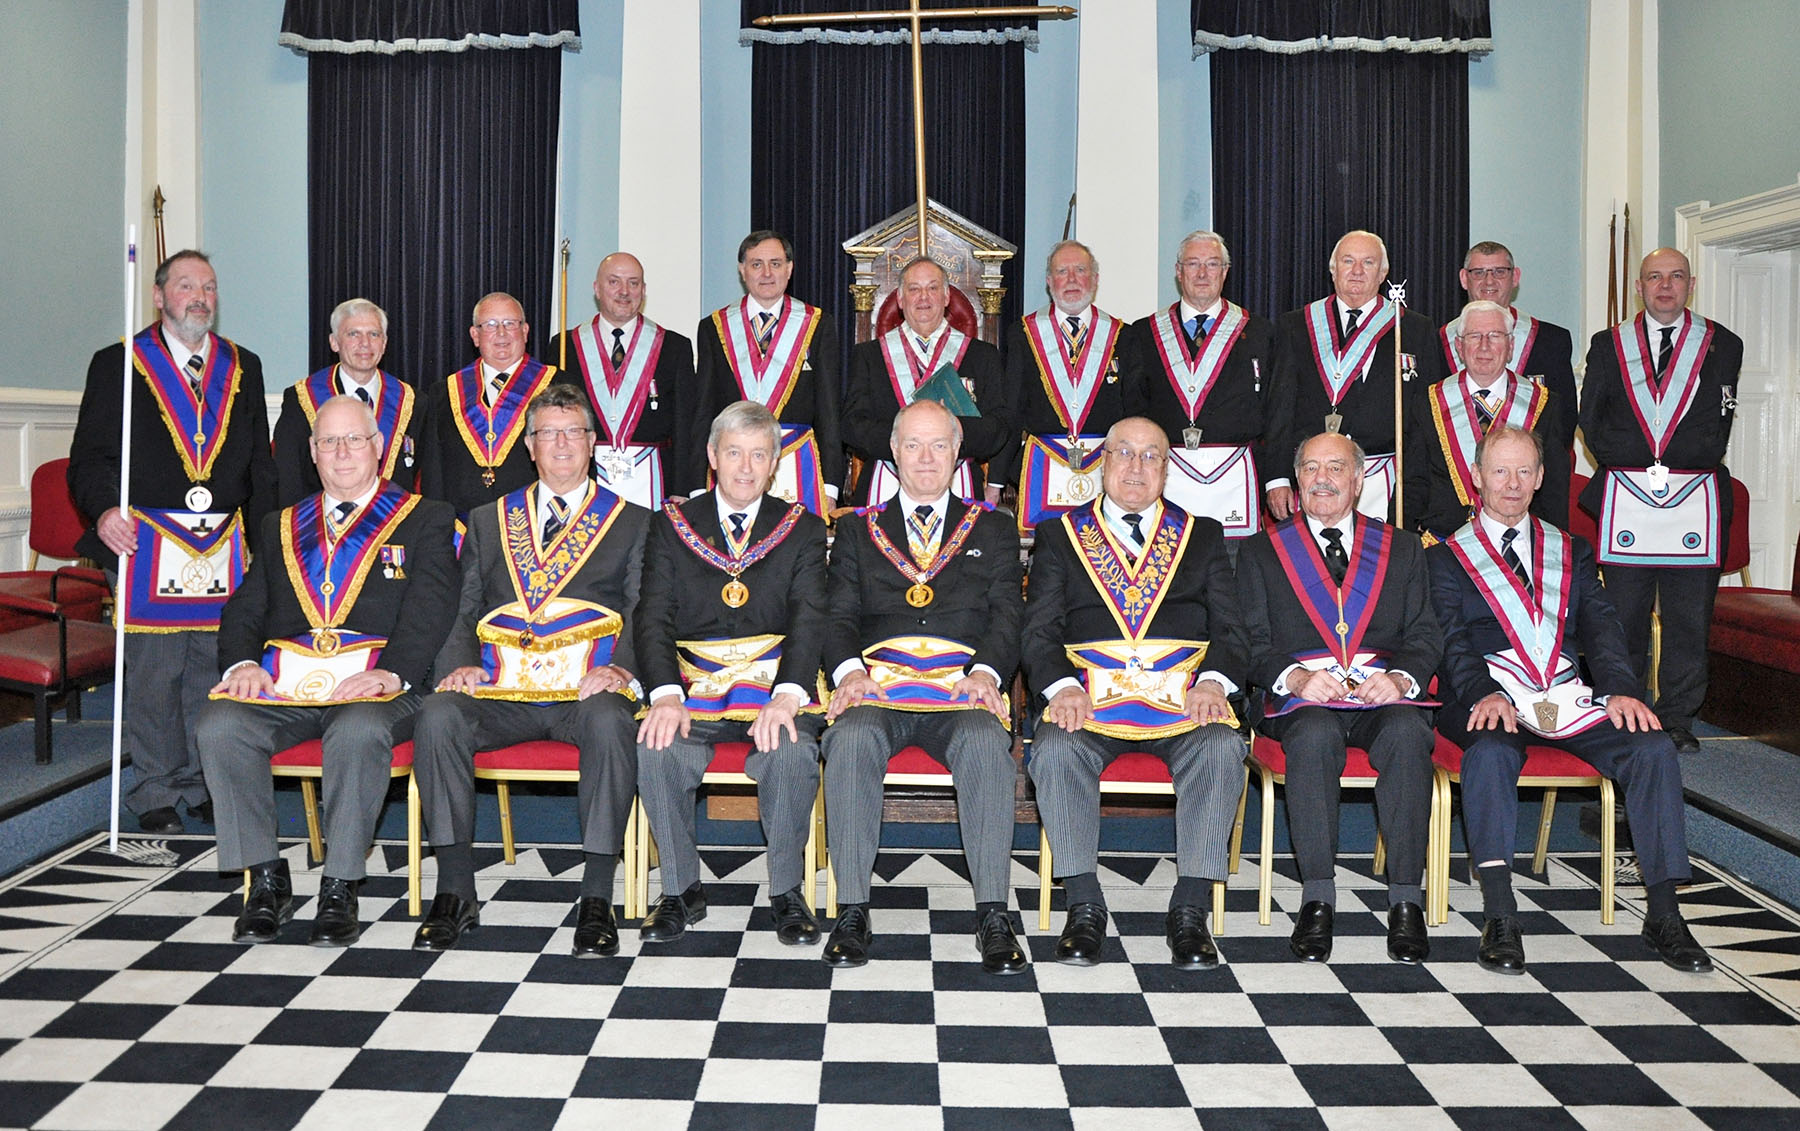 Executive visit to Stoneleigh Mark Lodge